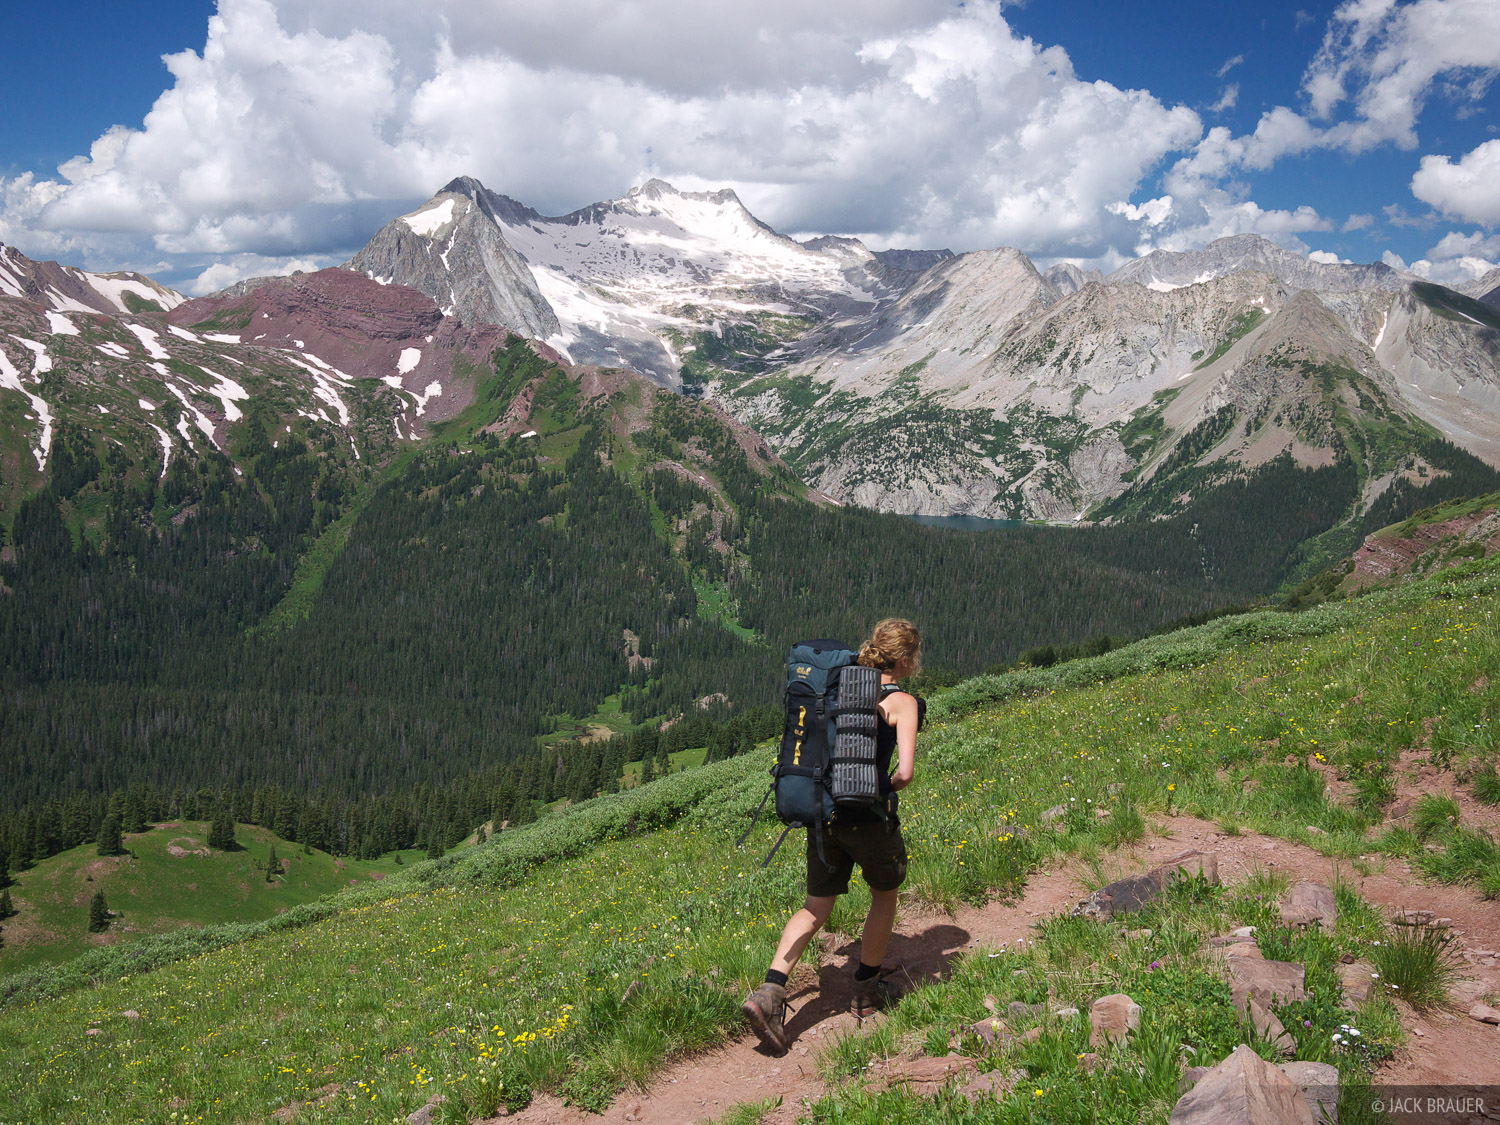 Buckskin Pass, Snowmass Mountain, hiking, Elk Mountains, Colorado, Maroon Bells-Snowmass Wilderness, photo